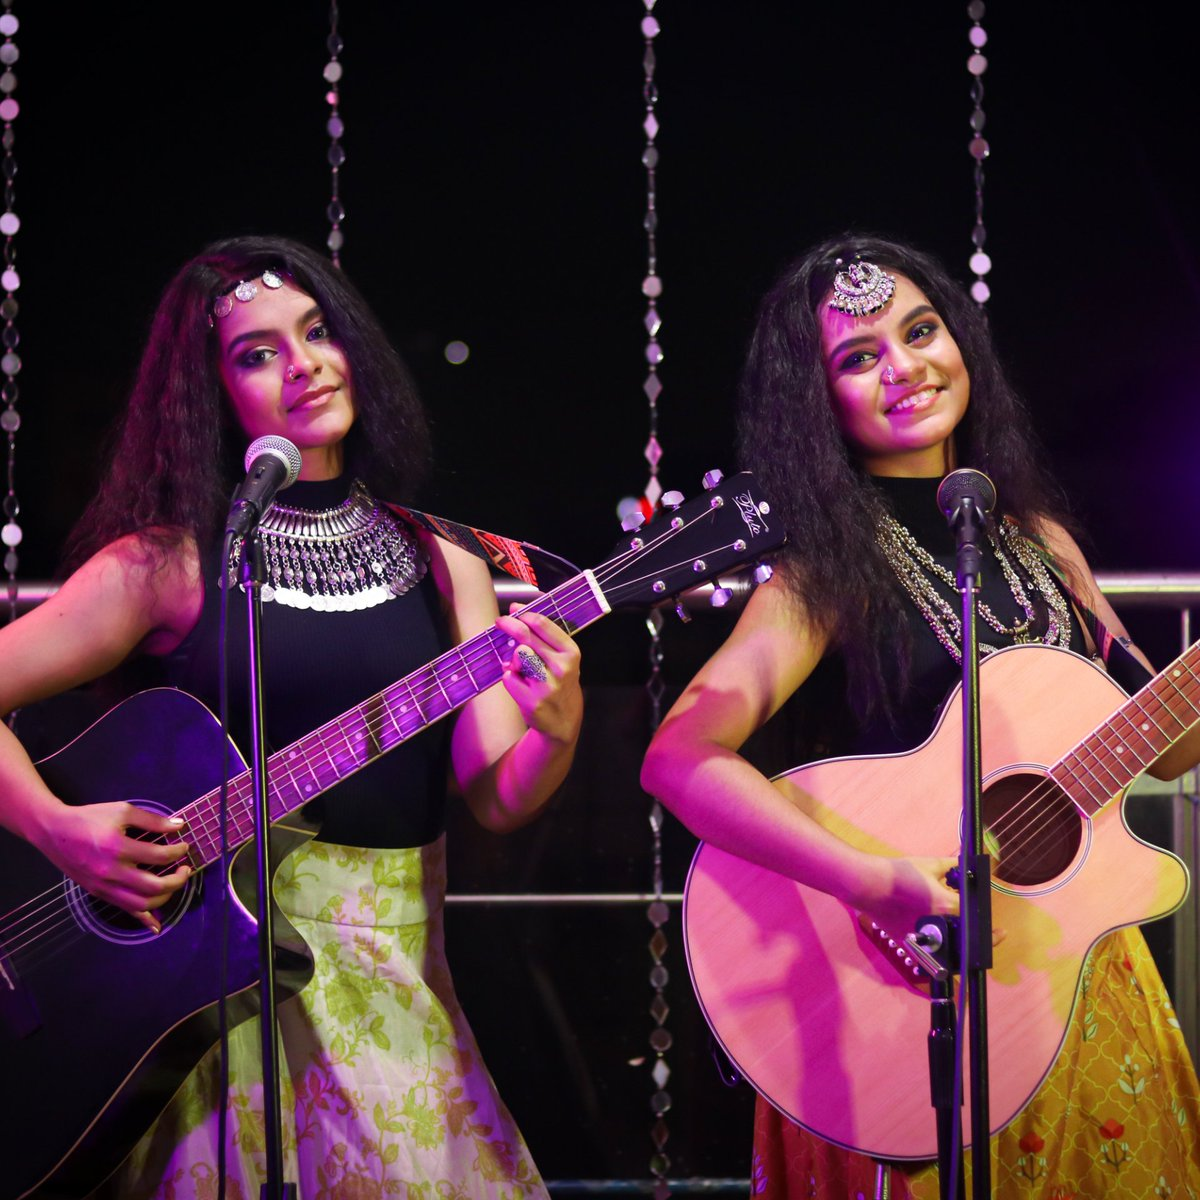 Episode 14 of Balcony Concert releasing tonight at 12am IST on YouTube !!  Can you guess what song it is ? #NandySisters #BalconyConcert